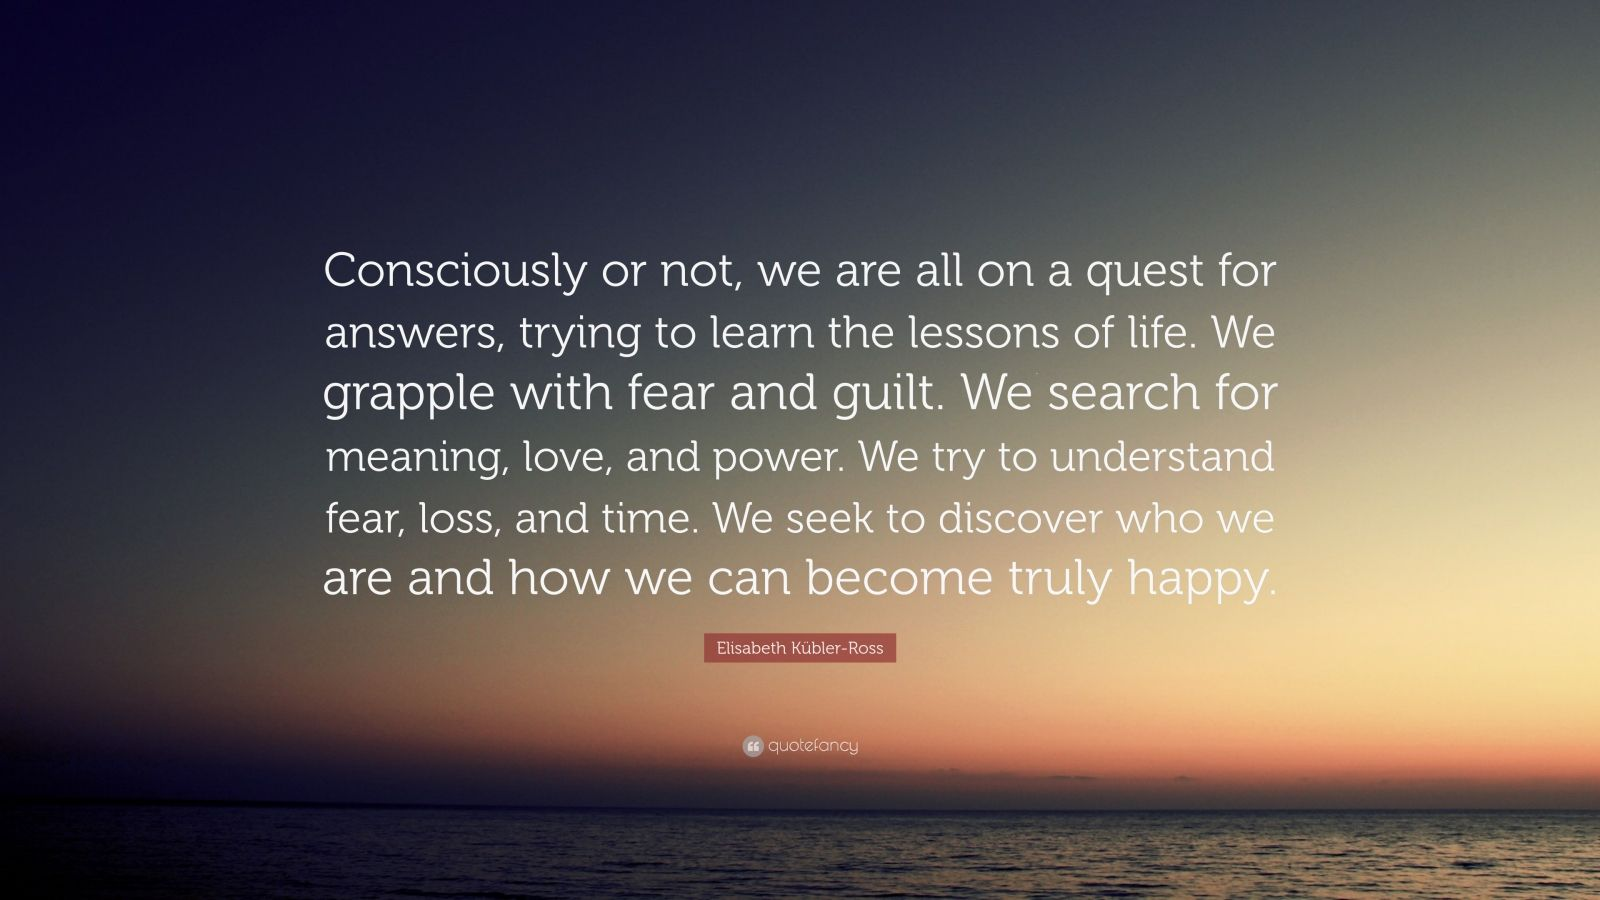 """Elisabeth Kübler-Ross Quote: """"Consciously or not, we are all on a quest for answers, trying to learn the lessons of life. We grapple with fear and guilt. We search for meaning, love, and power. We try to understand fear, loss, and time. We seek to discover who we are and how we can become truly happy."""""""